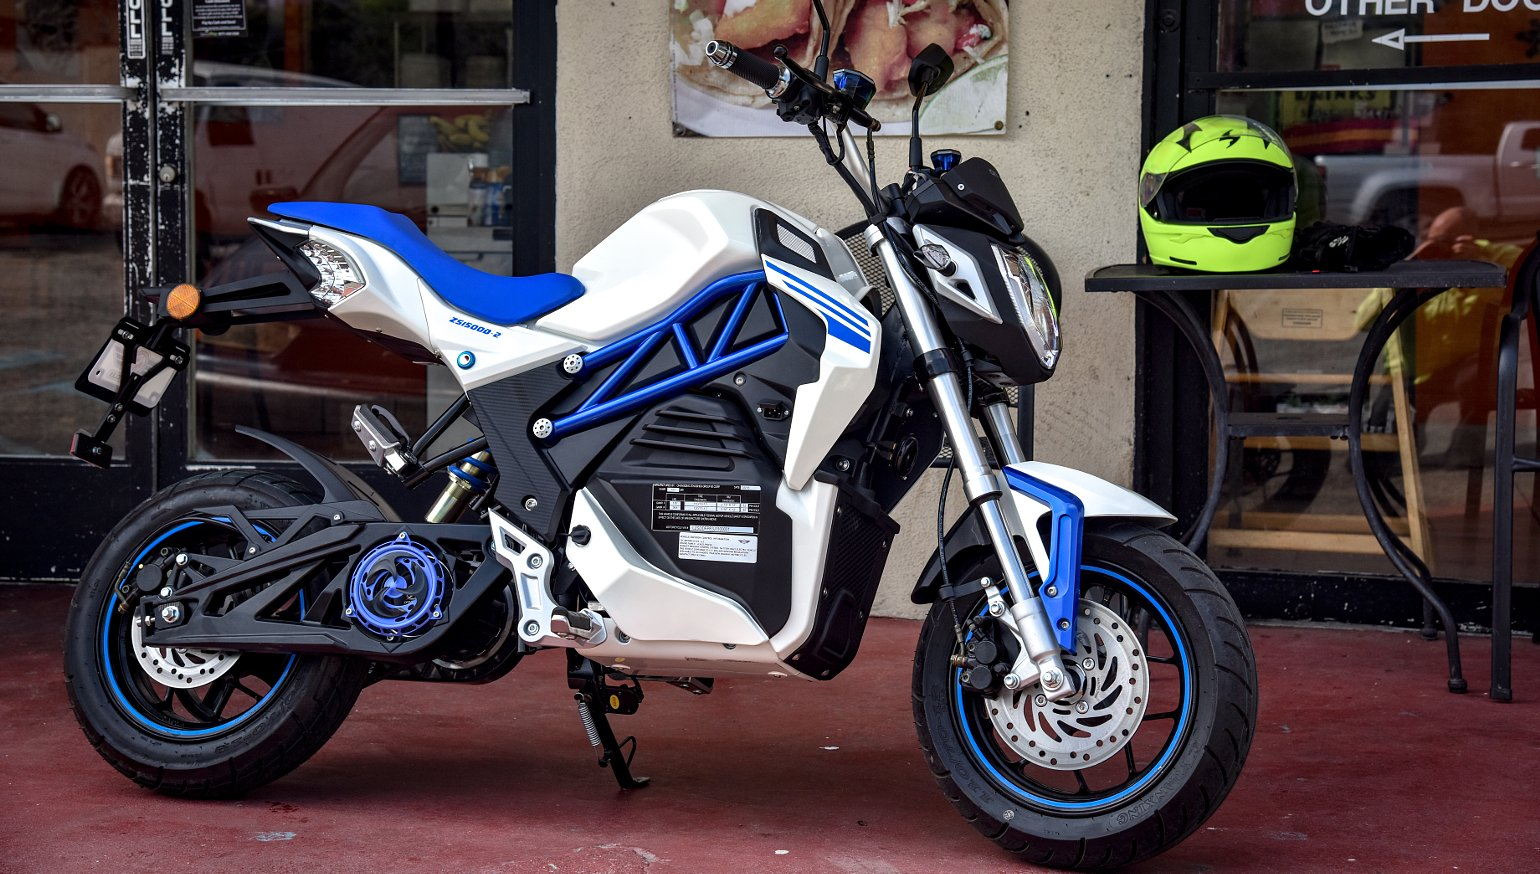 CSC introduces its first electric motorcycle, the City Slicker, at